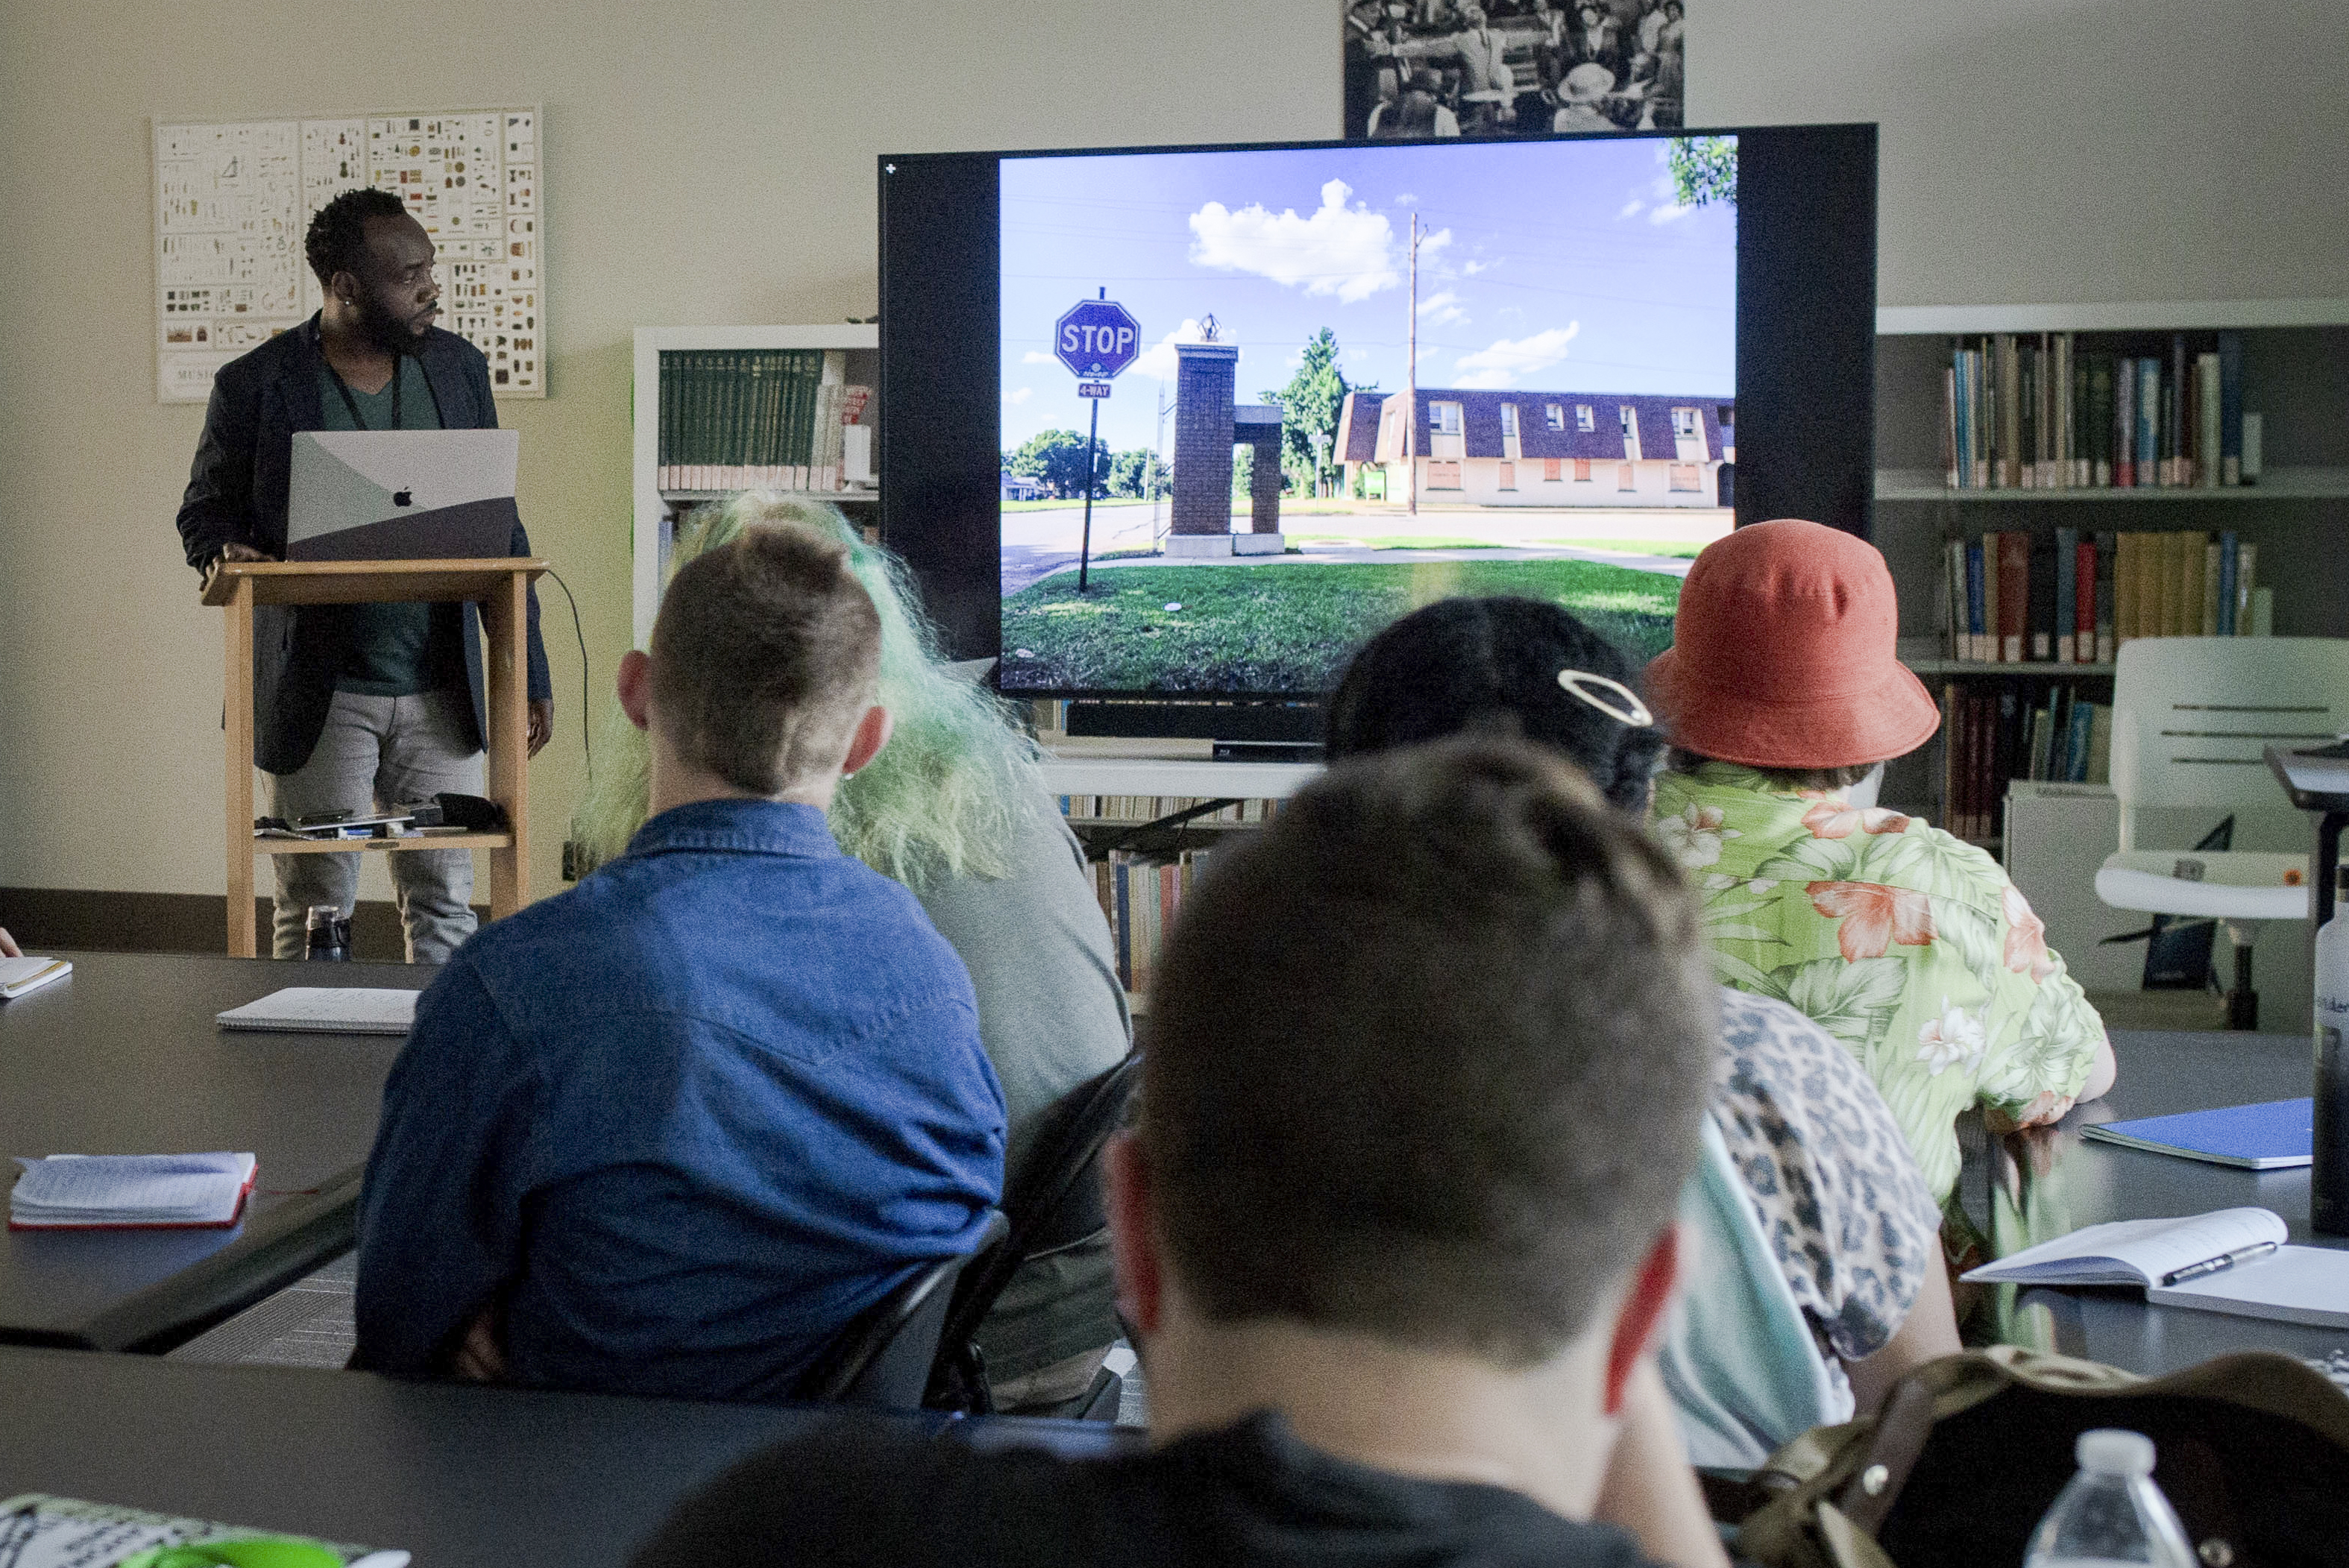 A man stands at a lectern in front of a group of students watching a film on a TV screen in a classroom setting.